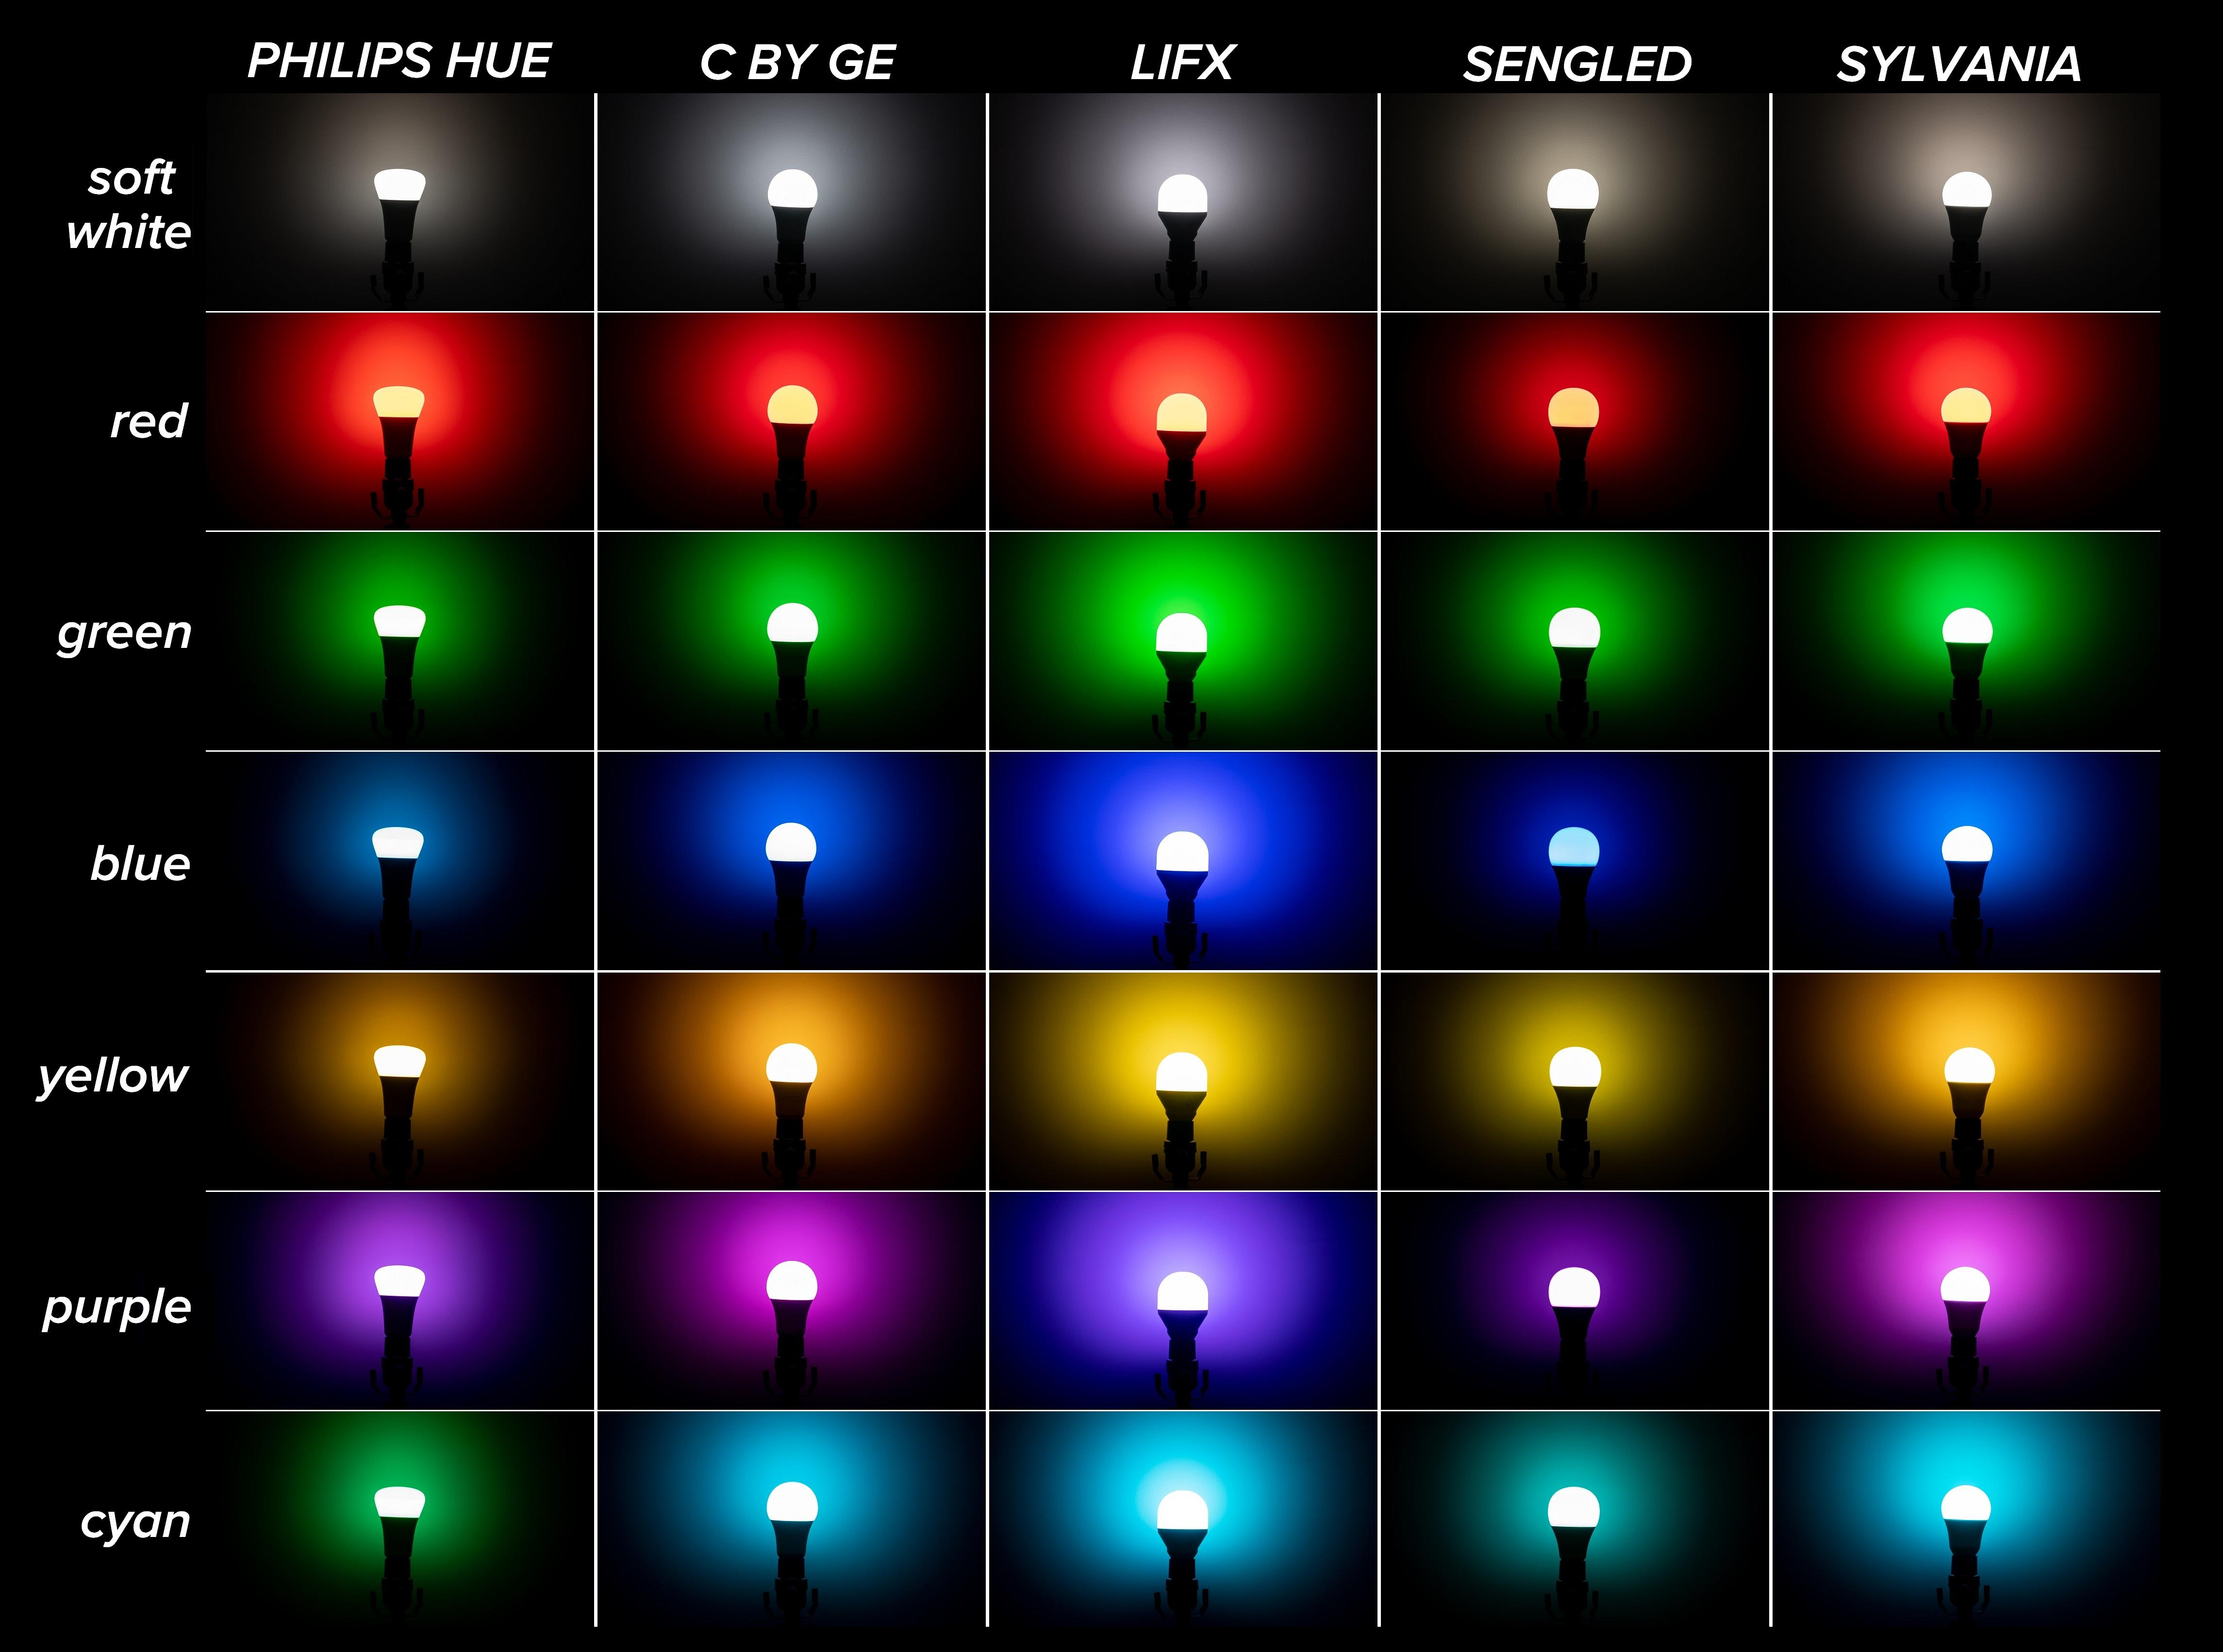 smart-color-changing-rgb-led-light-bulb-color-grid-philips-hue-lifx-c-by-ge-sylvania-smart-plus-sengled